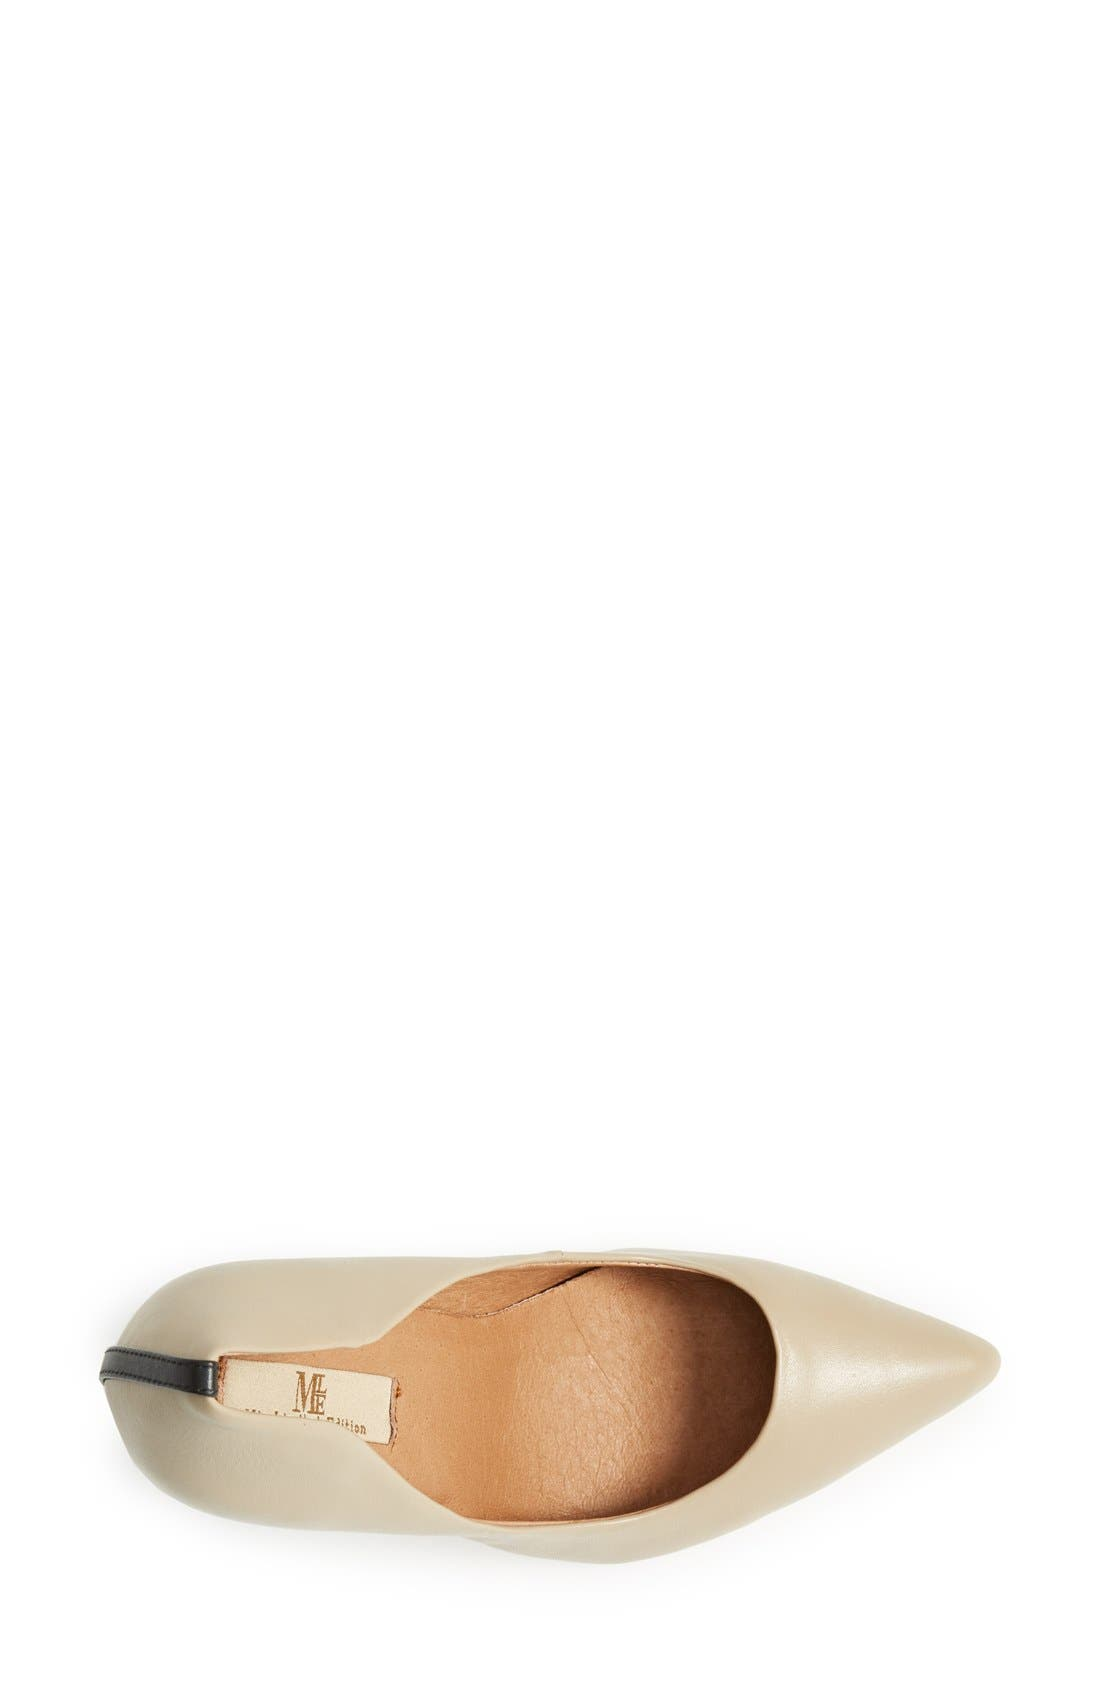 'Jolie' Pointy Toe Pump,                             Alternate thumbnail 3, color,                             Taupe